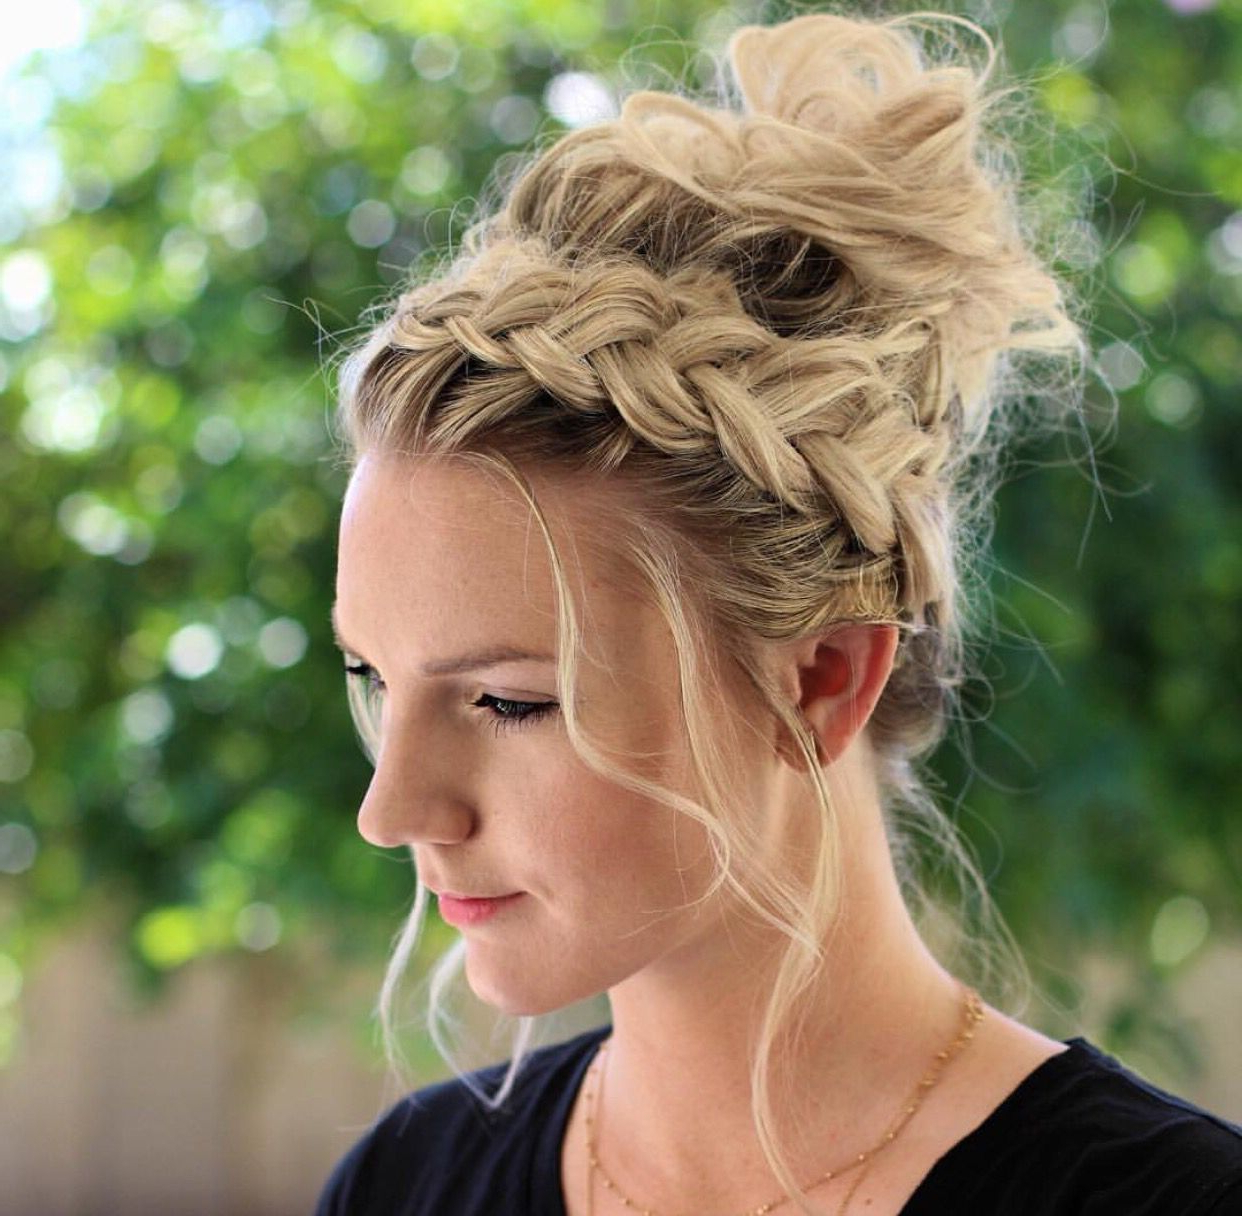 Messy Bun With Well Known Crown Braid Updo Hairstyles (View 19 of 20)